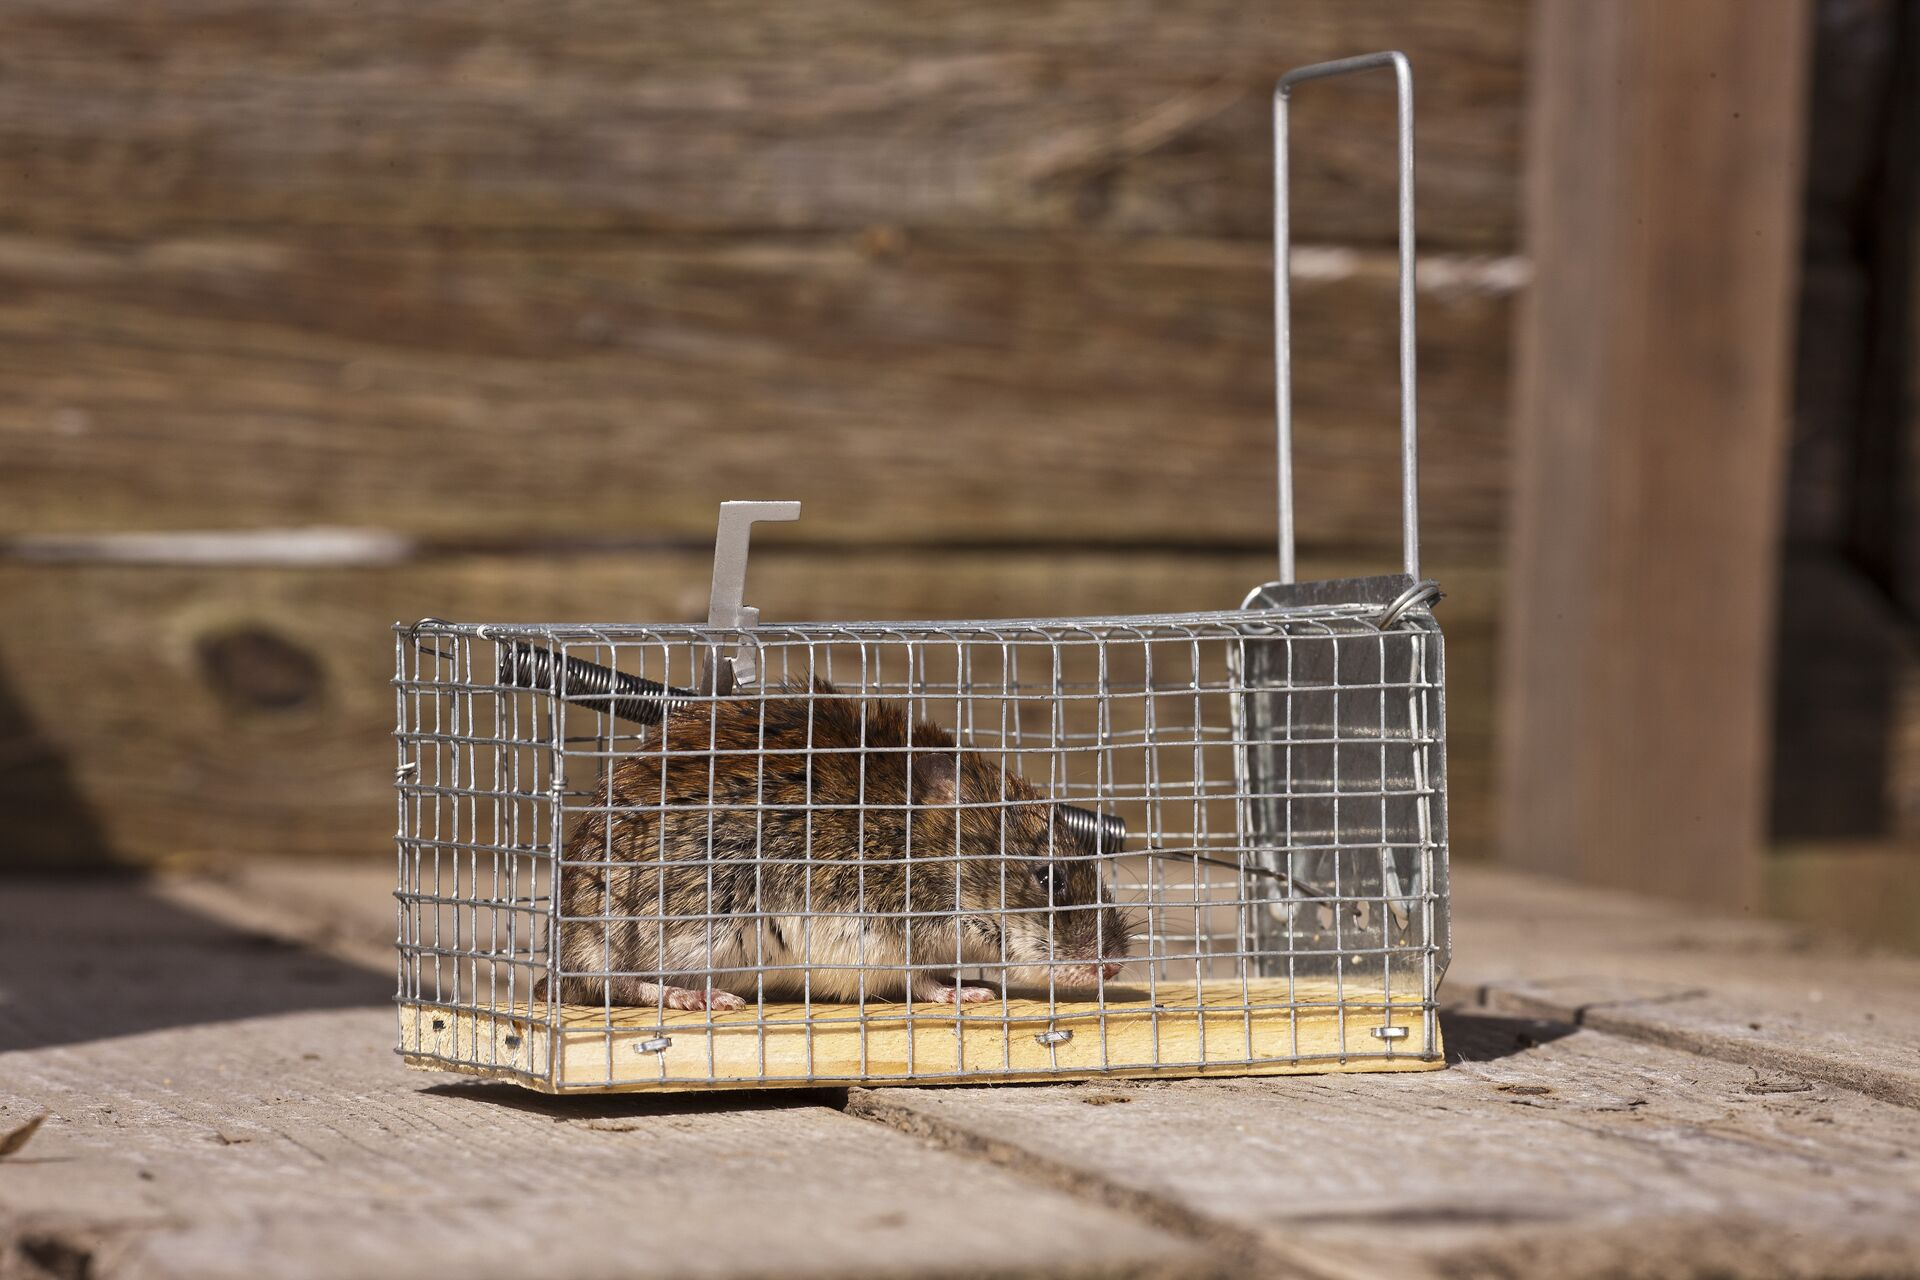 Best Humane Mouse Traps | INSECT COP